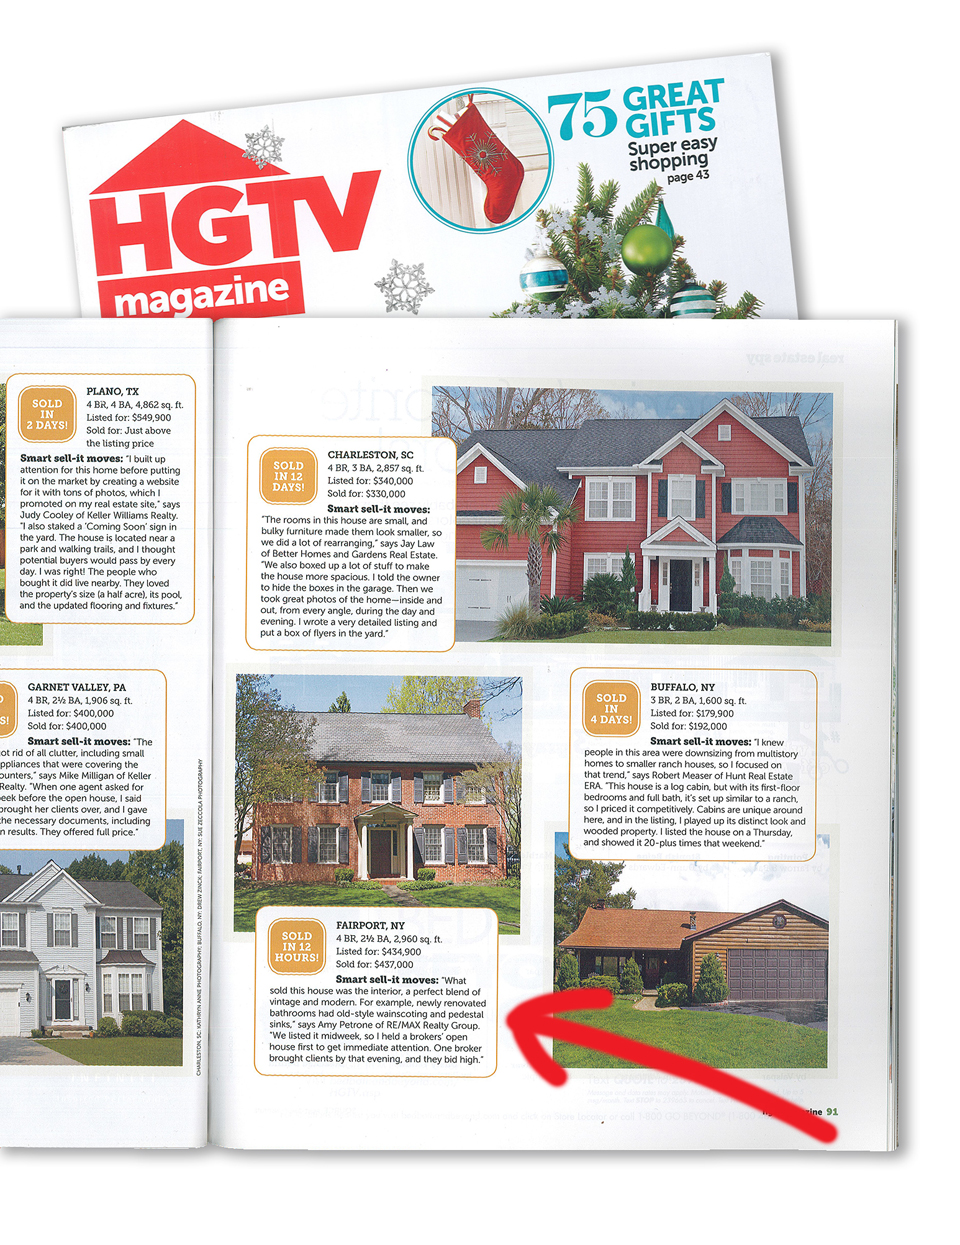 HGTV News Article